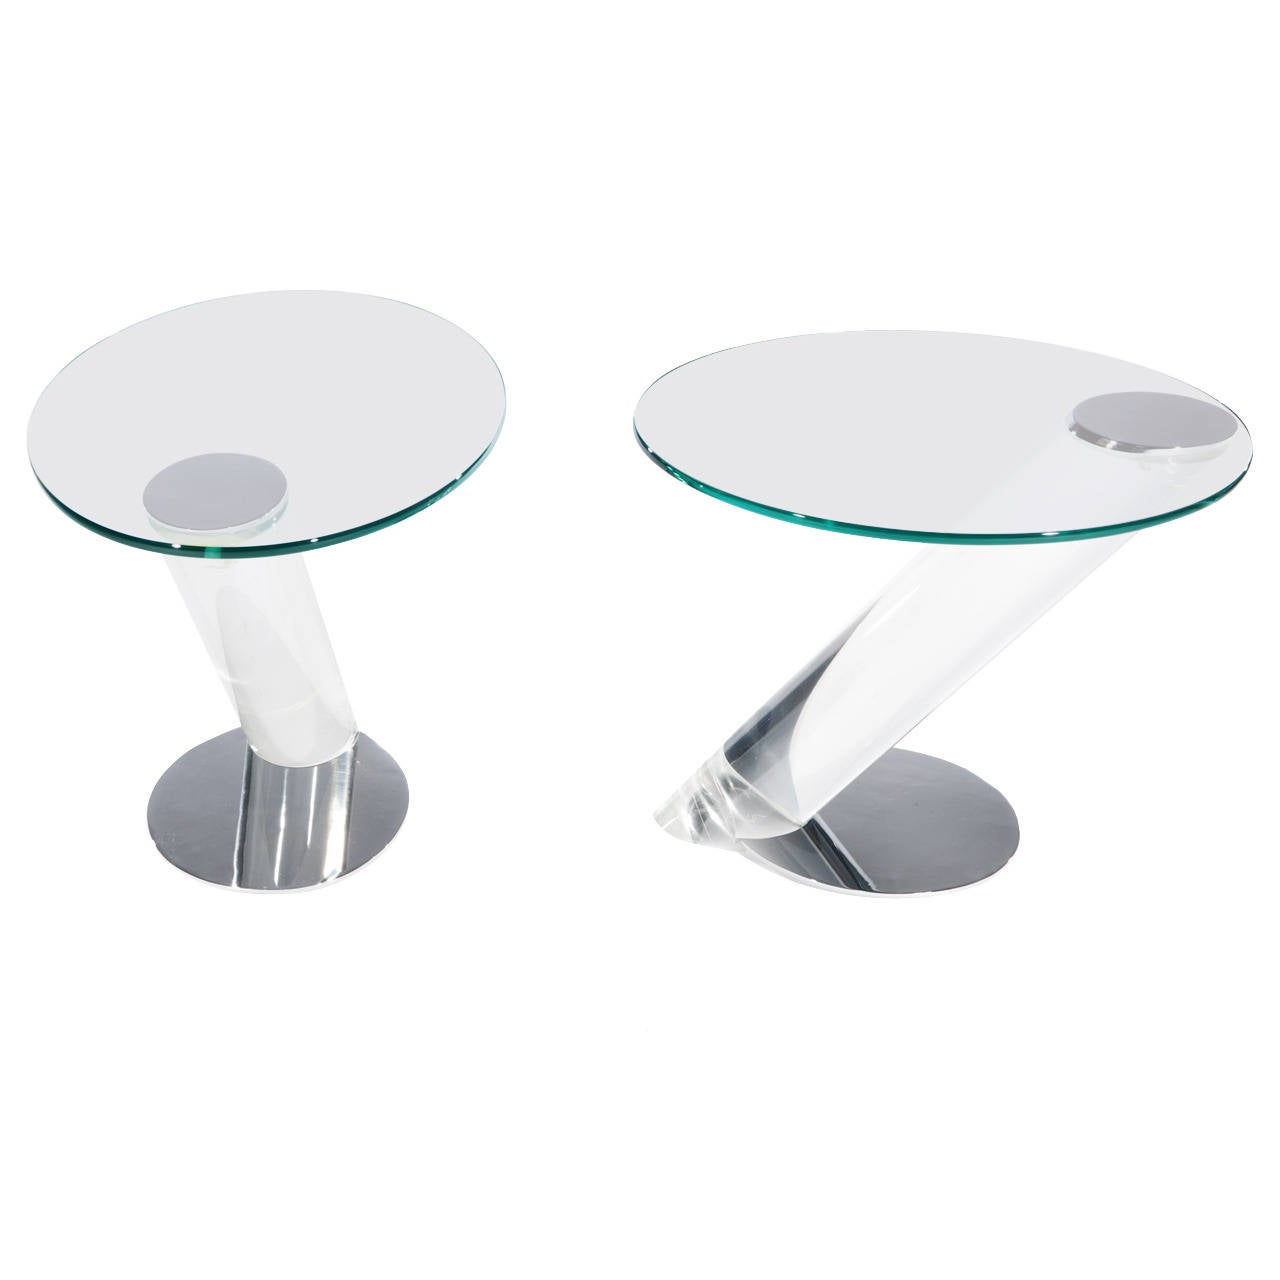 Murano gl floor lamp murano gl floor lamps 173 for at 1stdibs - Pair Of Lucite Chrome And Glass Side Tables By Lion In Frost 1